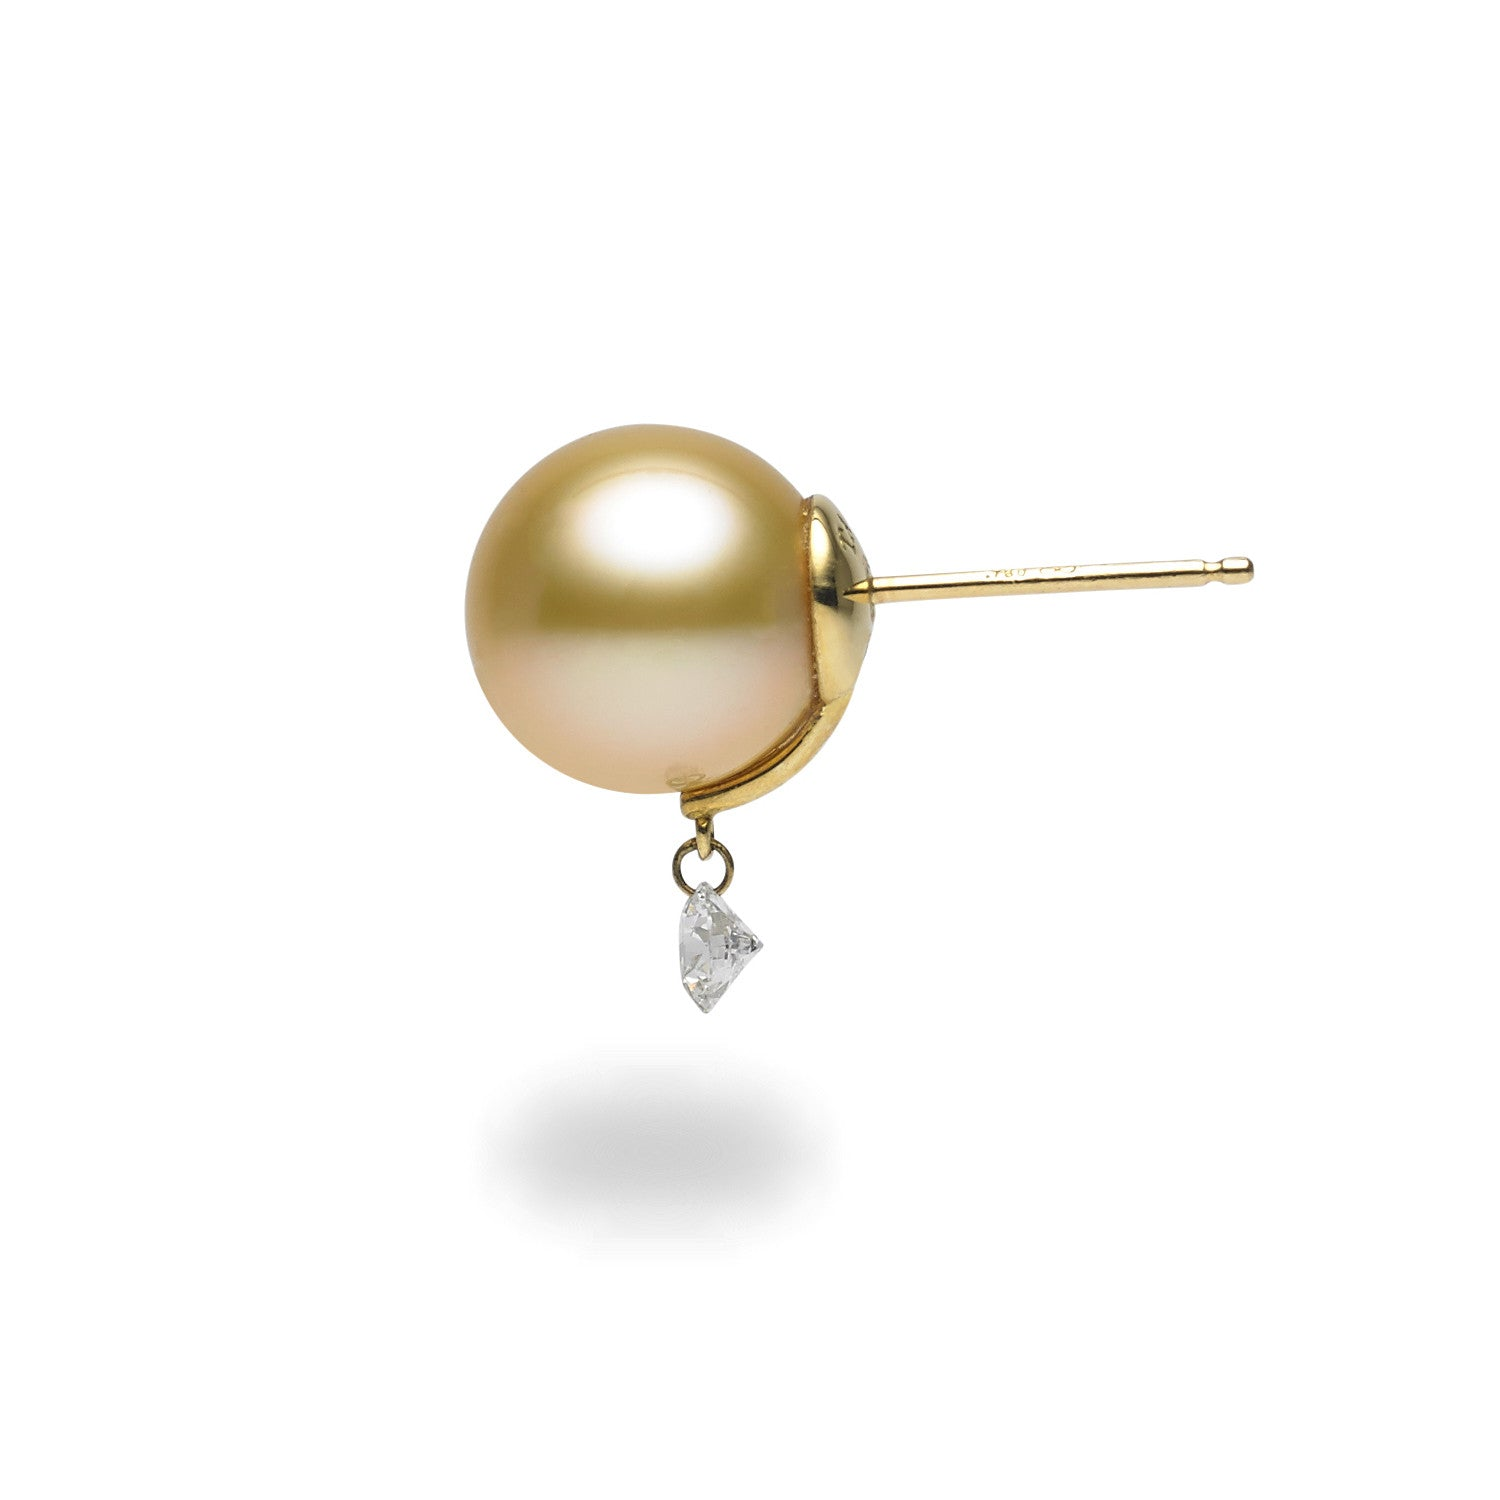 Dancing Diamond™ Collection 10-11mm Golden South Sea Pearl and Diamond Earrings